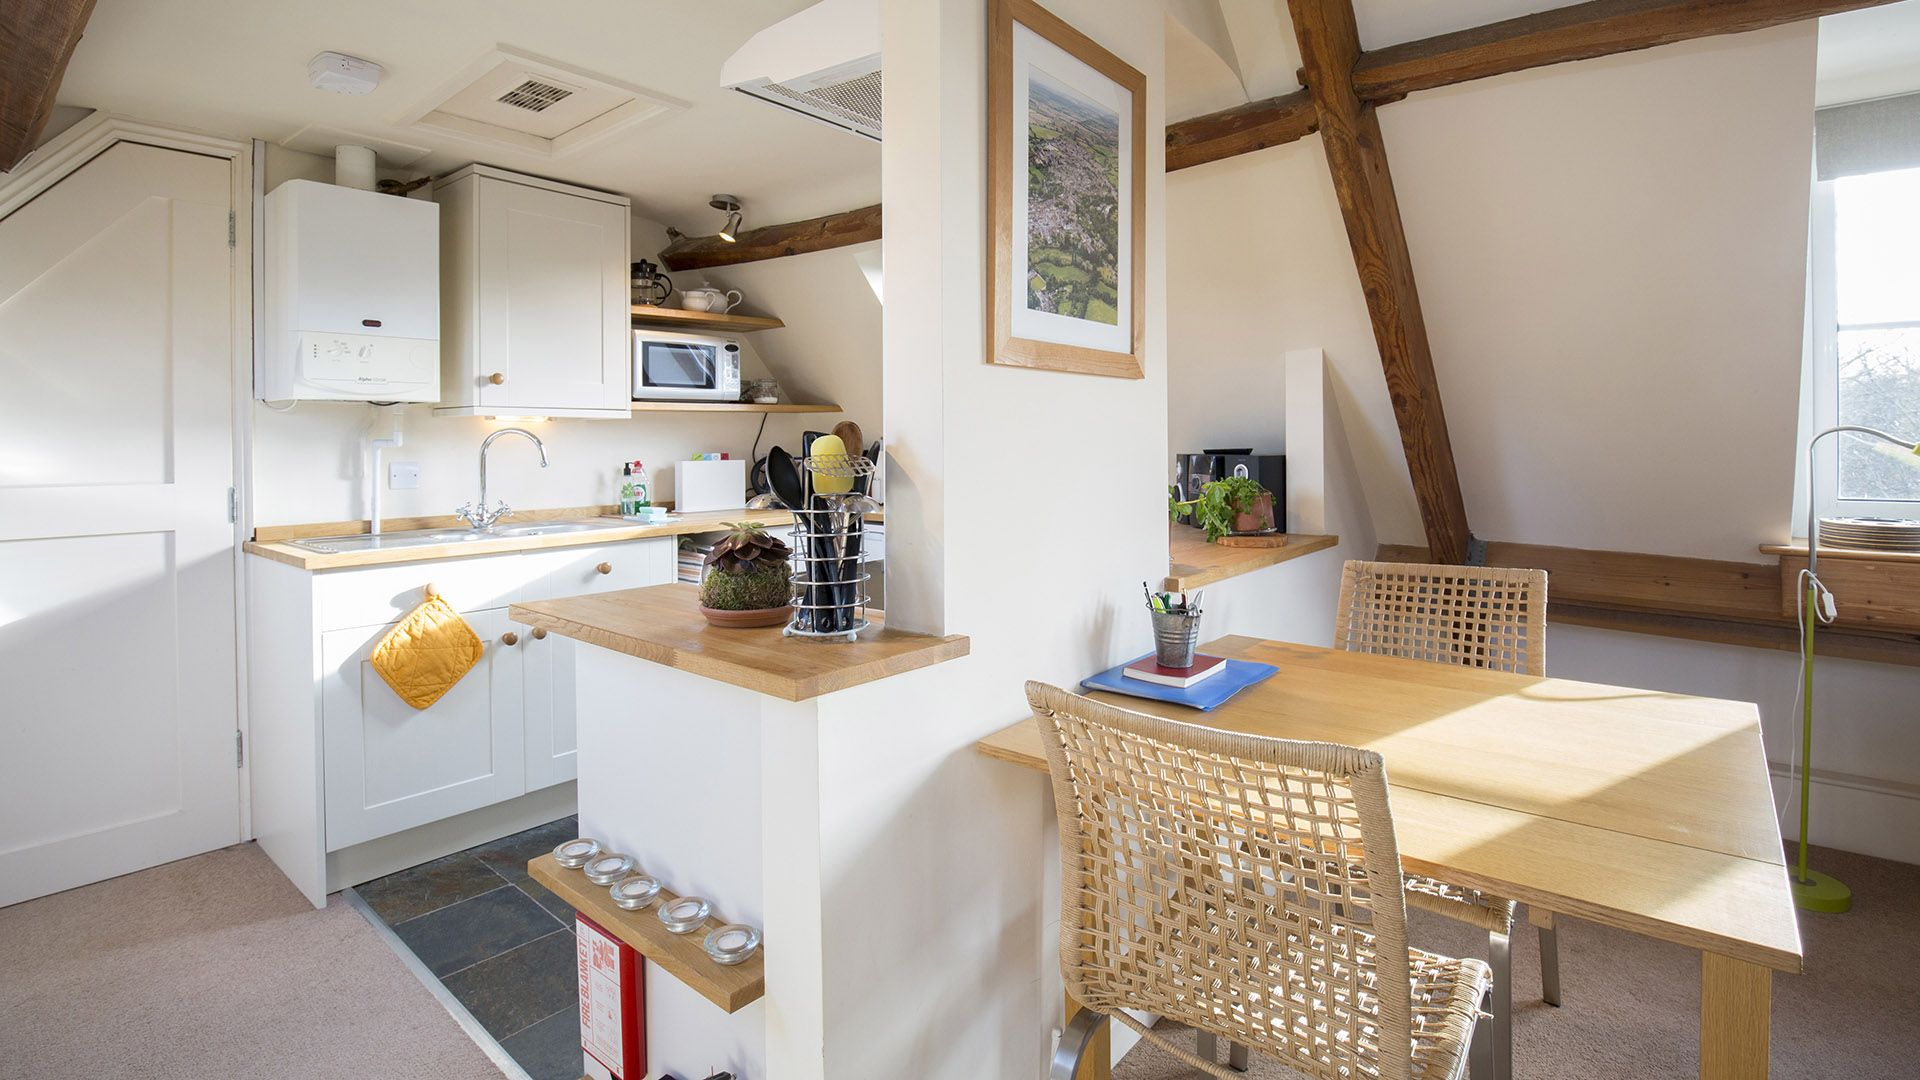 Kitchen, dining areas, The Leat at Wynard Mill, Bolthole Retreats